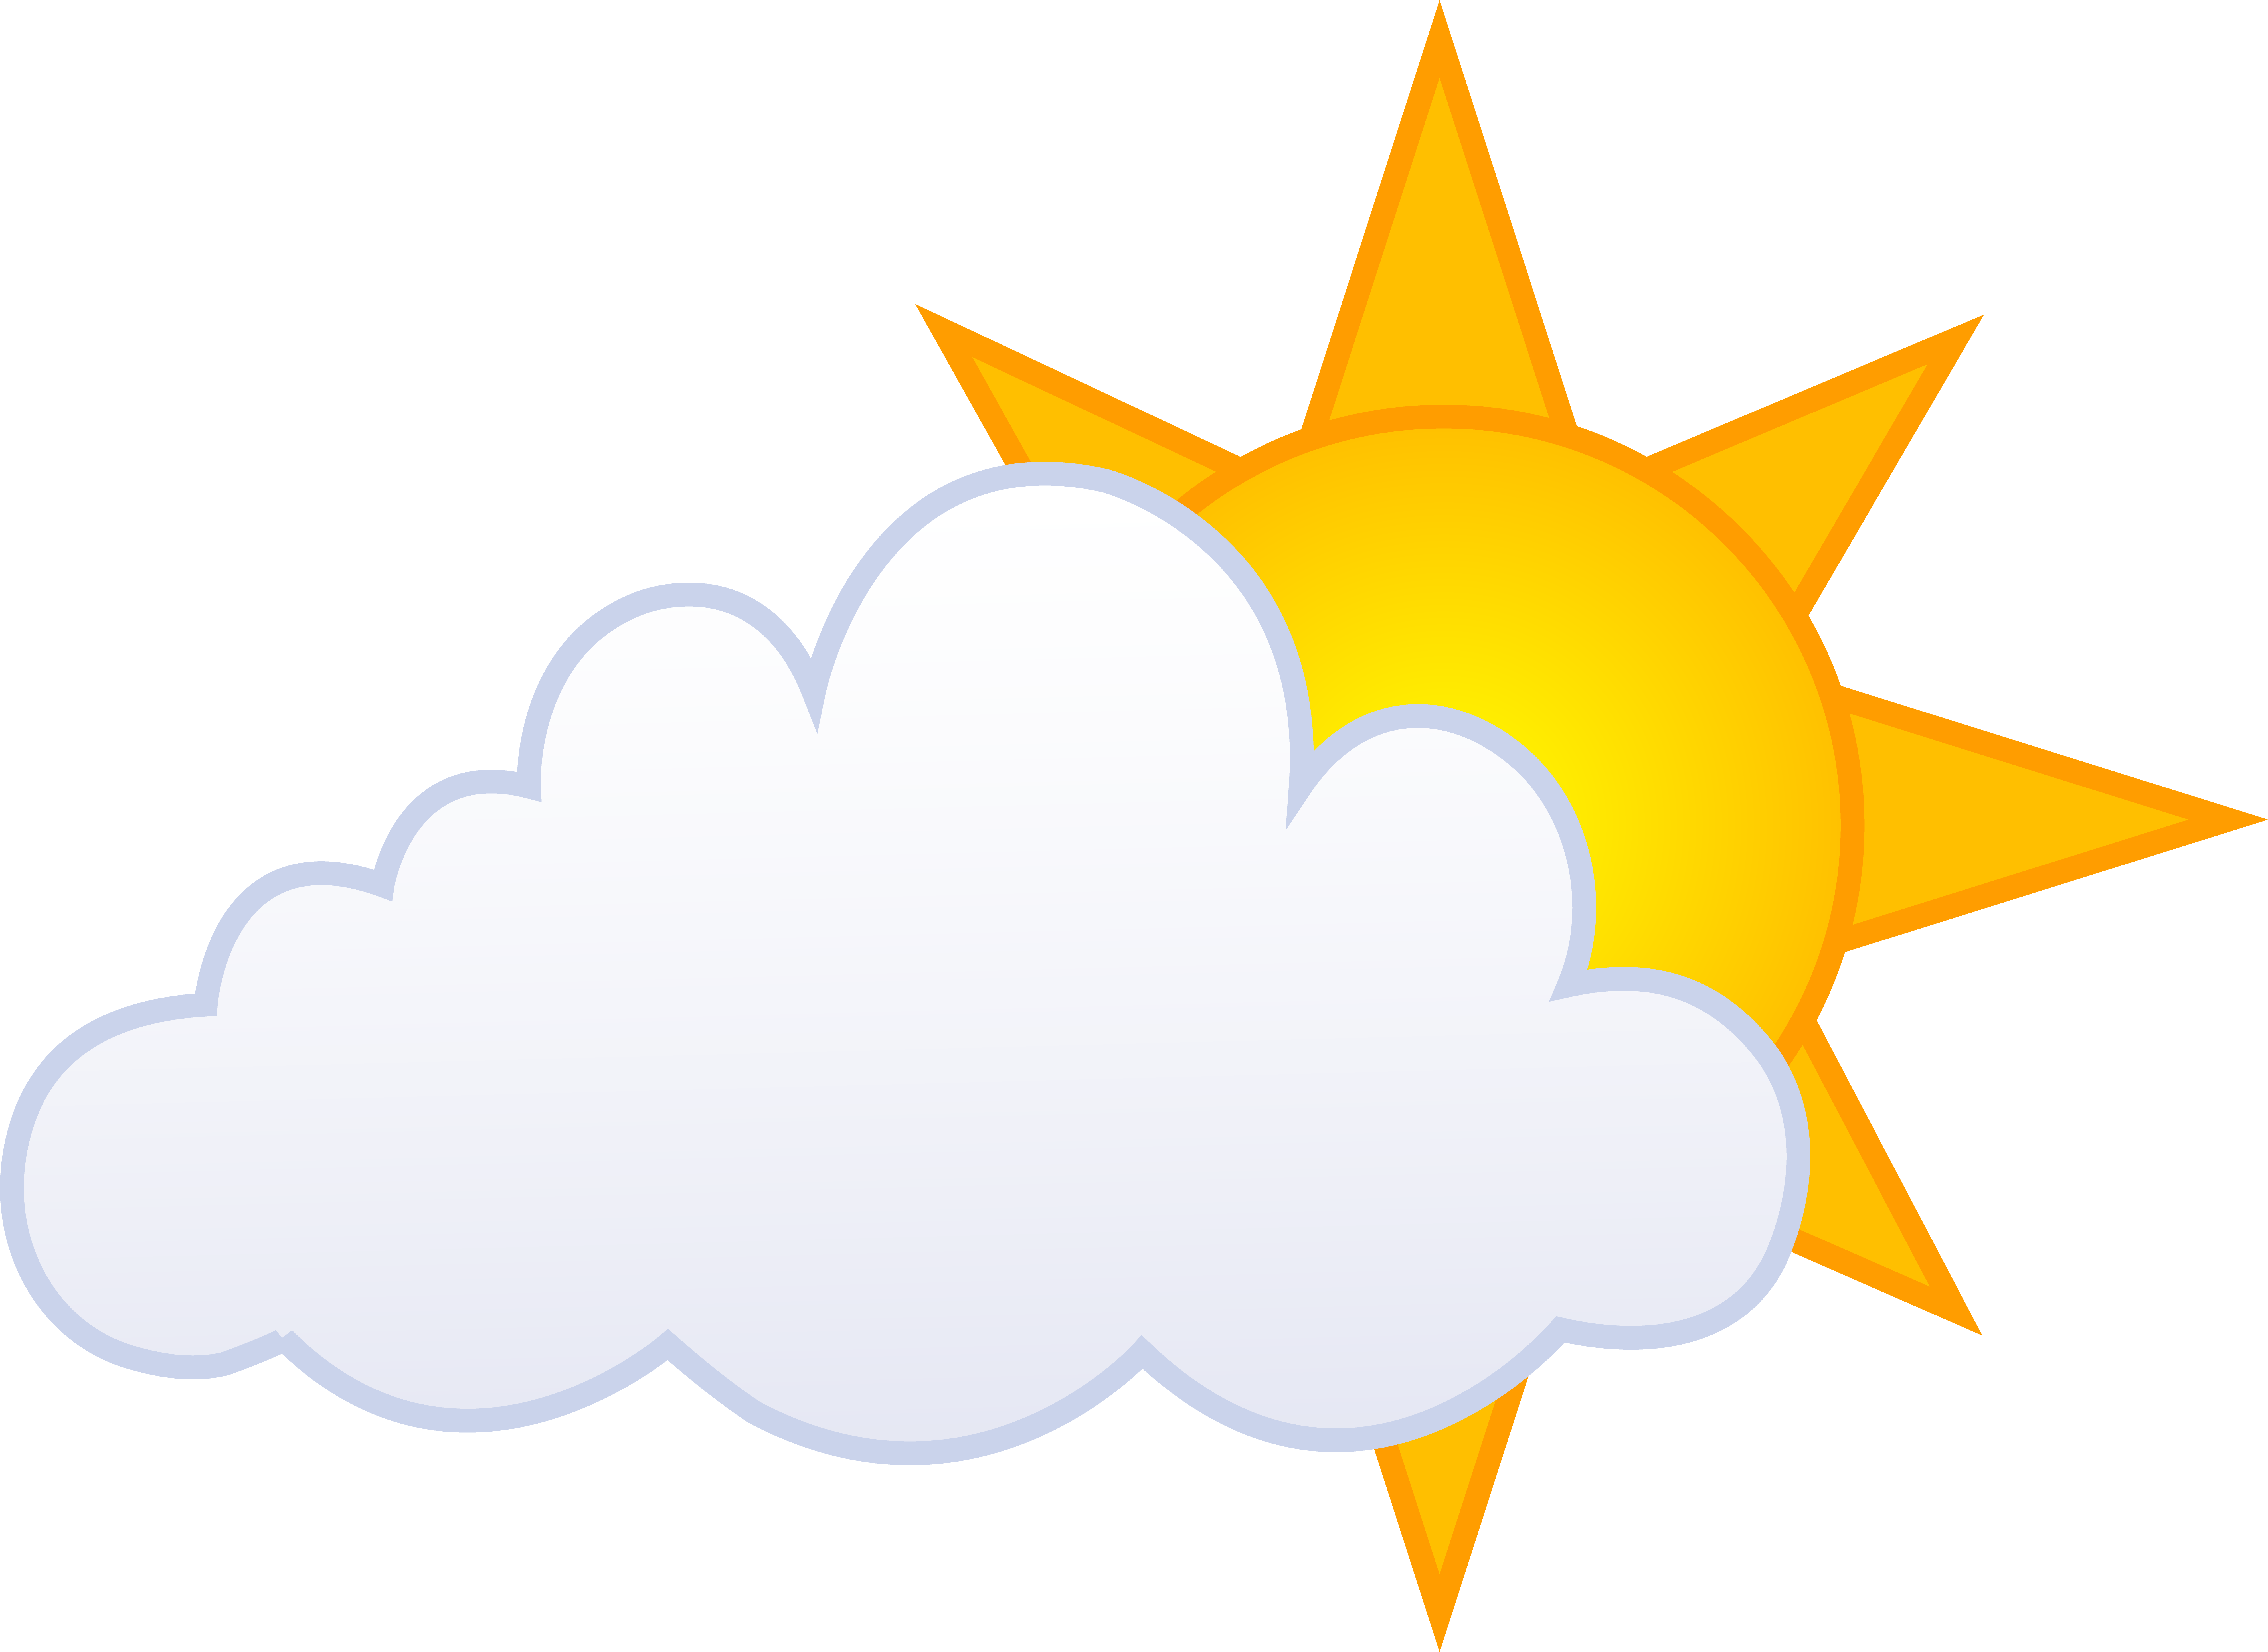 Golden Sun Behind Cloud - Free Clip Art